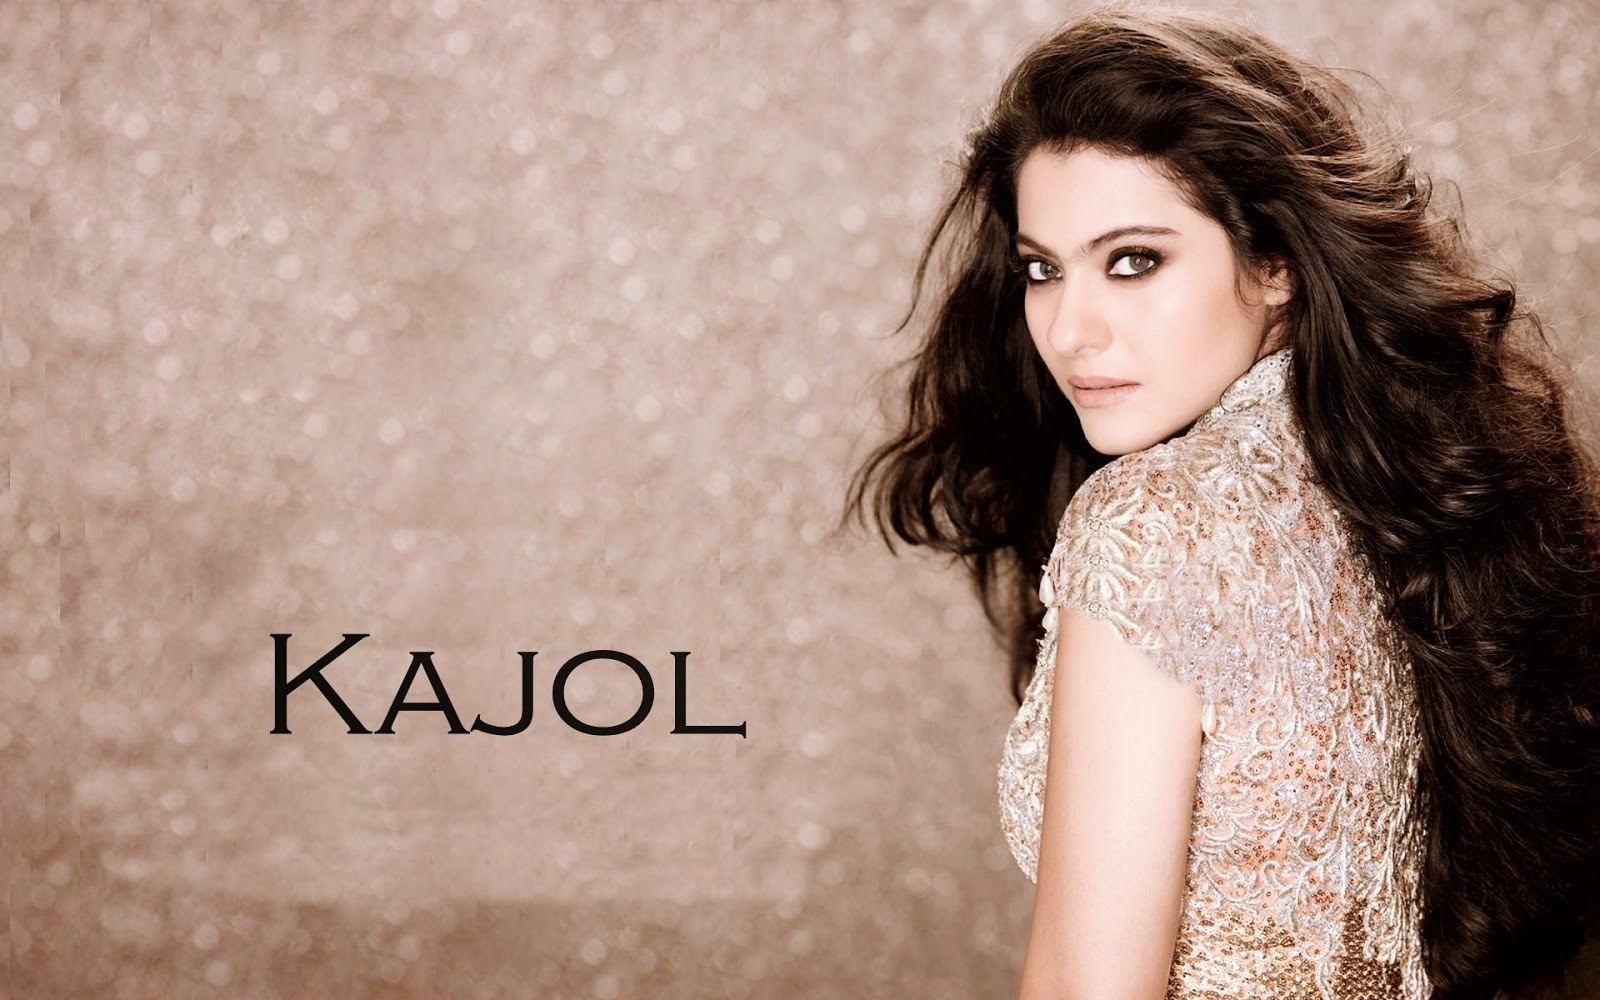 <b>Kajol HD Wallpaper</b> | <b>Wallpaper</b> | Pinterest | <b>Wallpapers</b> and <b>Hd</b> ...